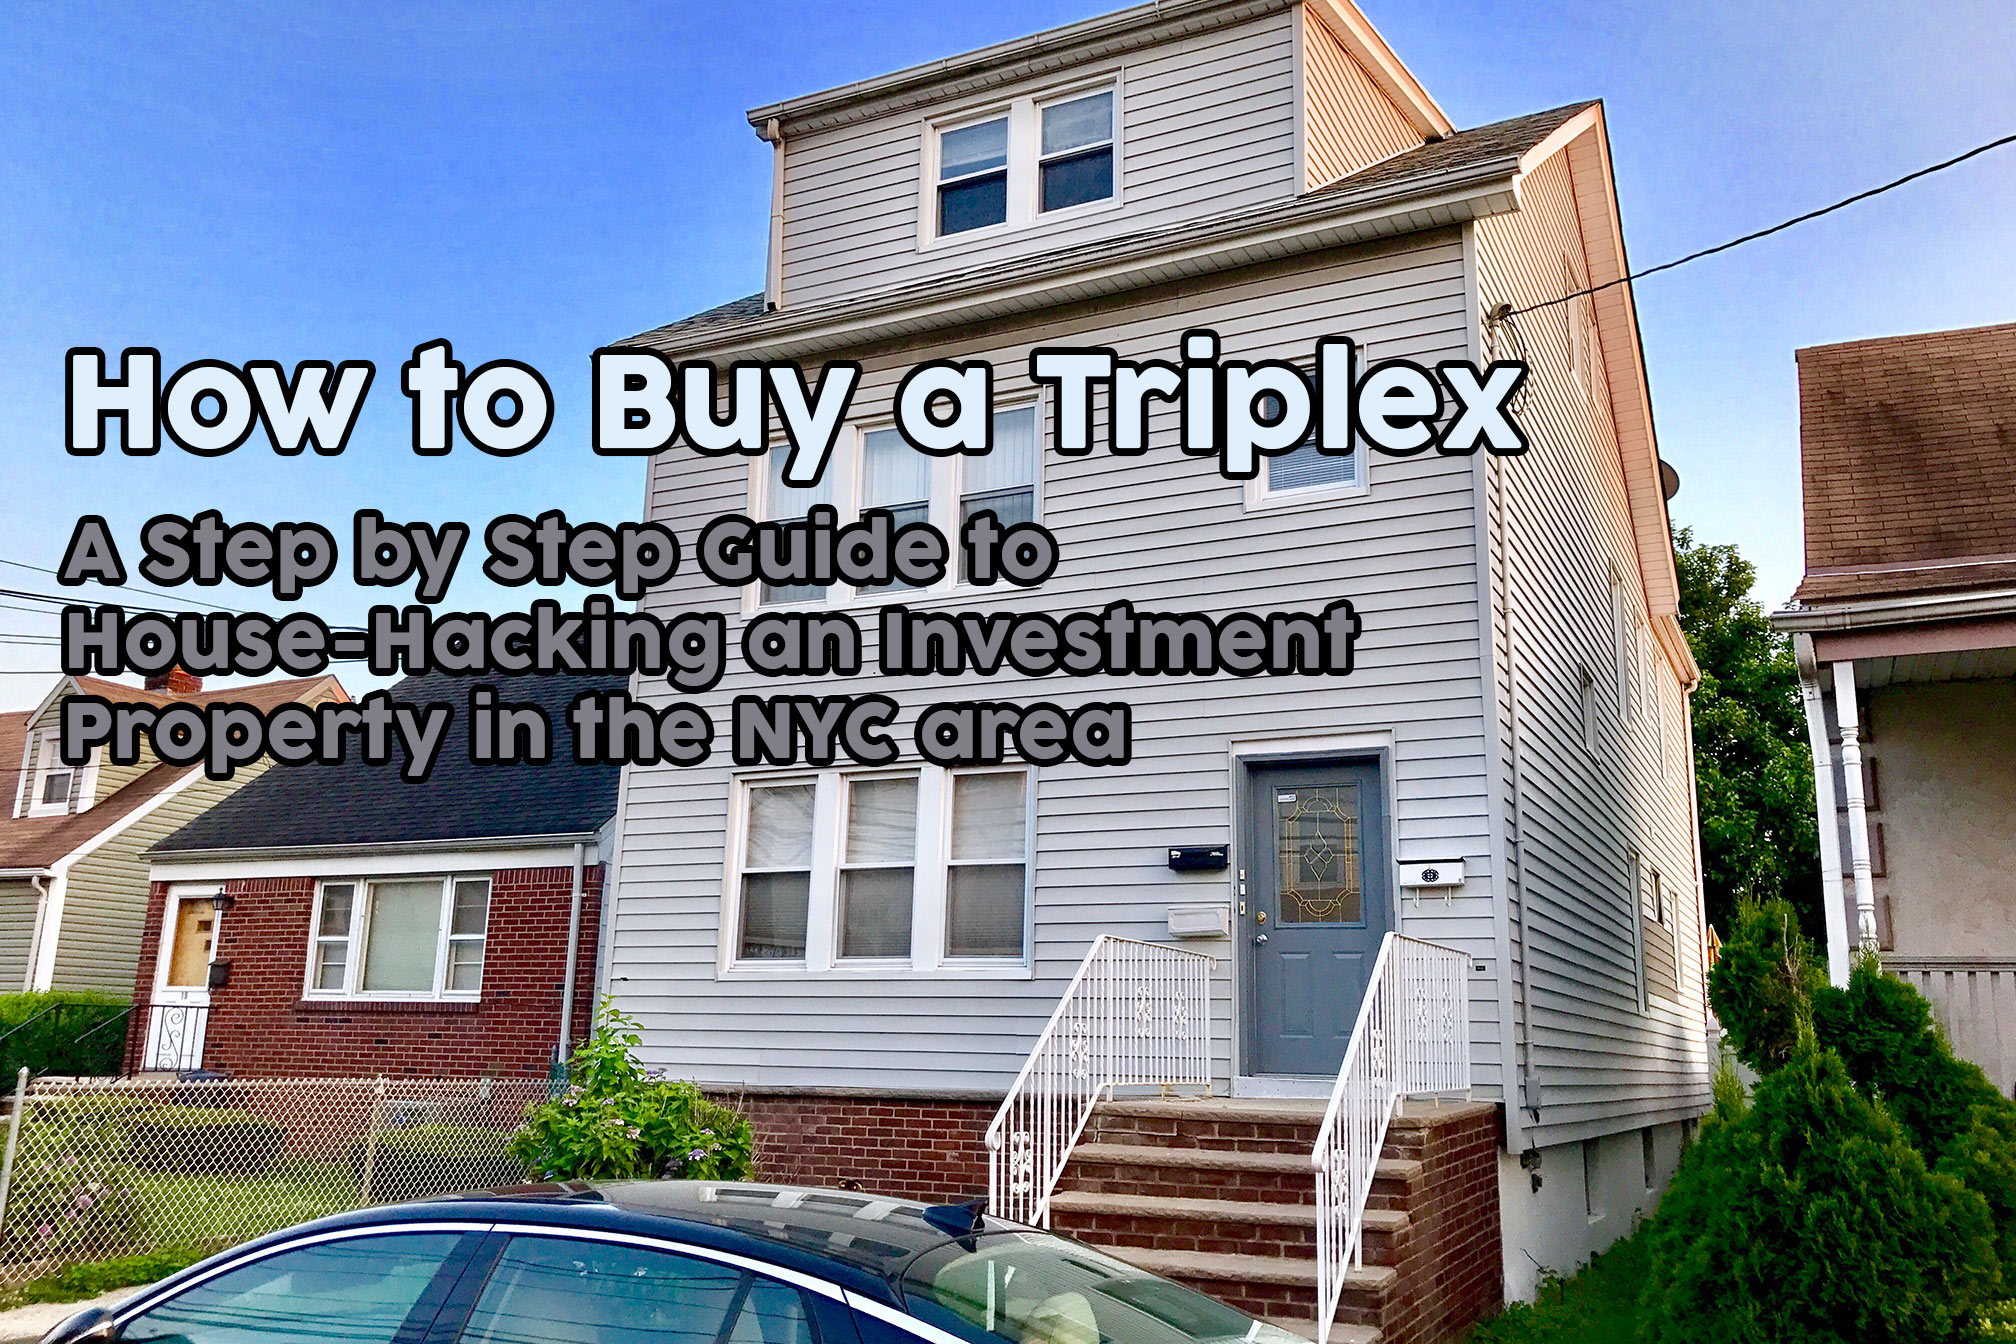 How to buy a triplex a step by step guide to house hacking an how to buy a triplex a step by step guide to house hacking an investment property in the nyc area ccuart Image collections